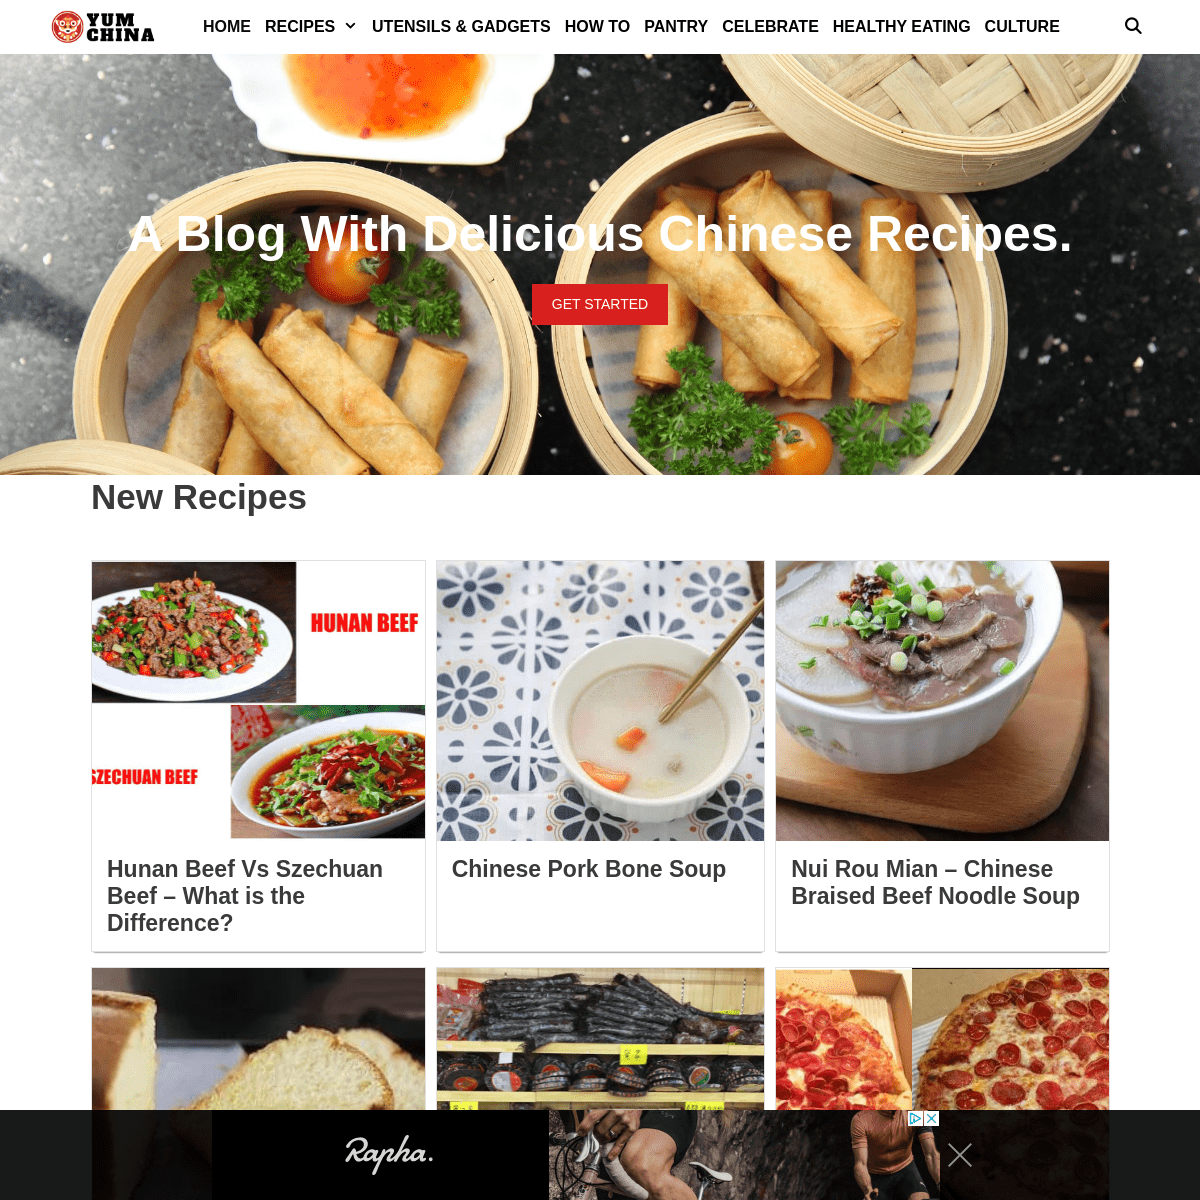 A Blog With Delicious Chinese Recipes - Yum Of China